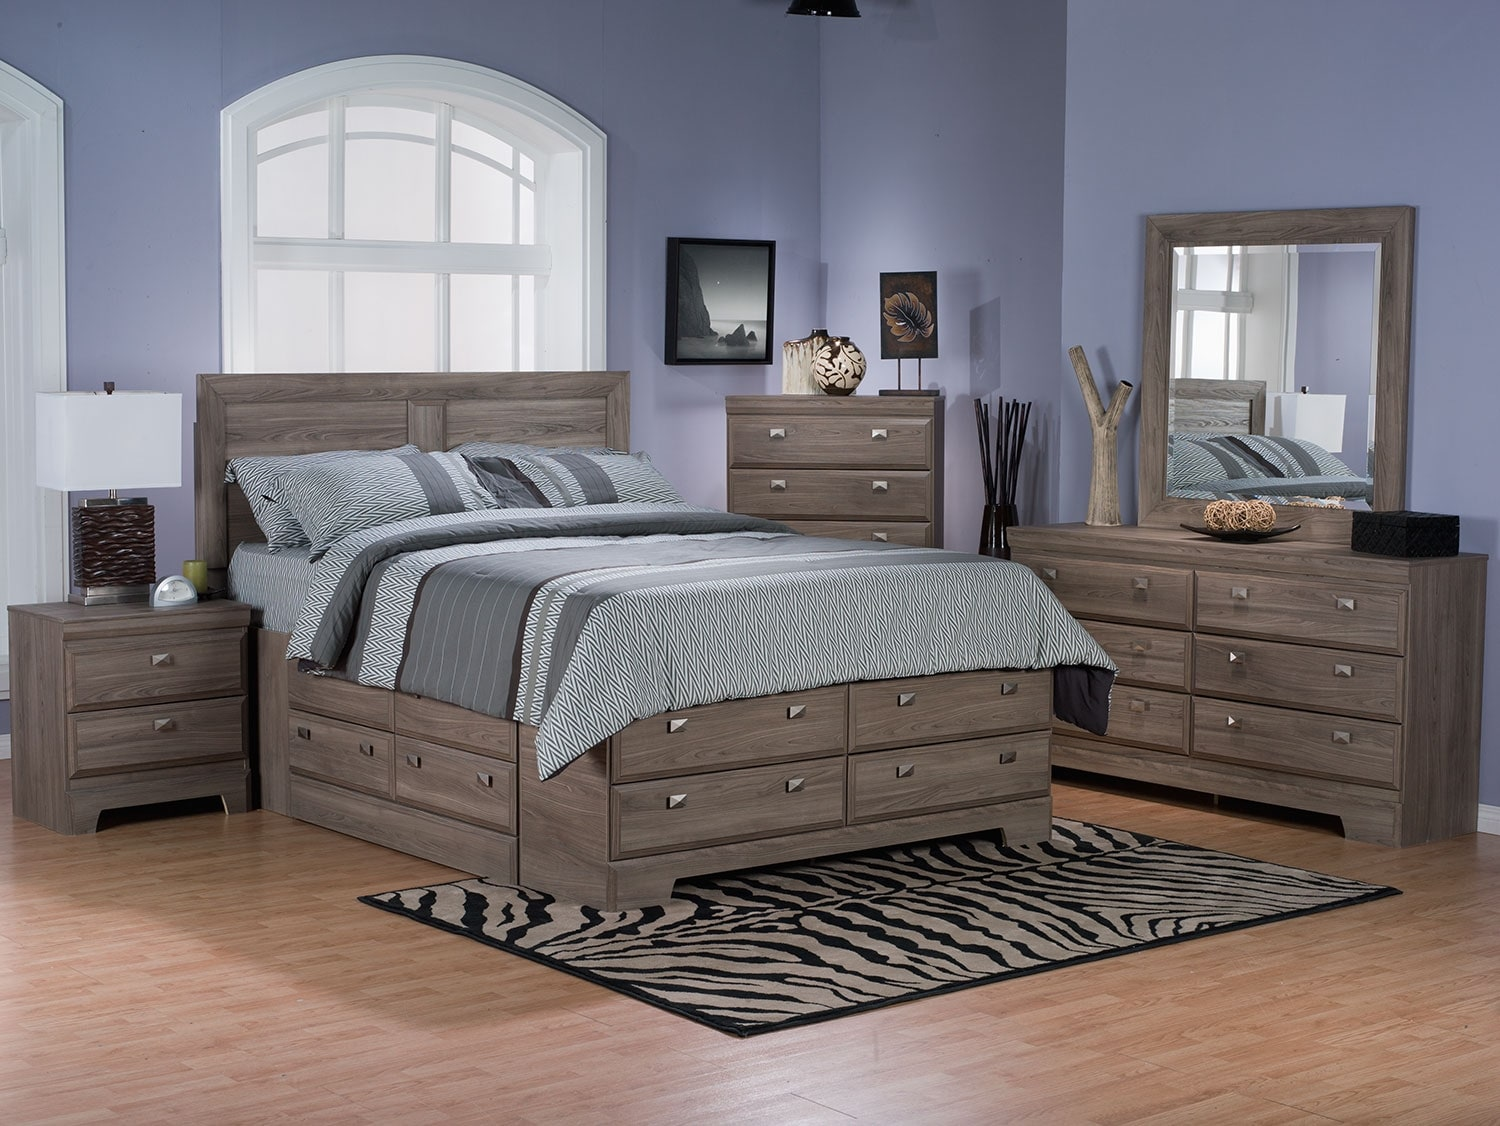 Bedroom Furniture - Yorkdale Light 8-Piece Queen Storage Bedroom Package